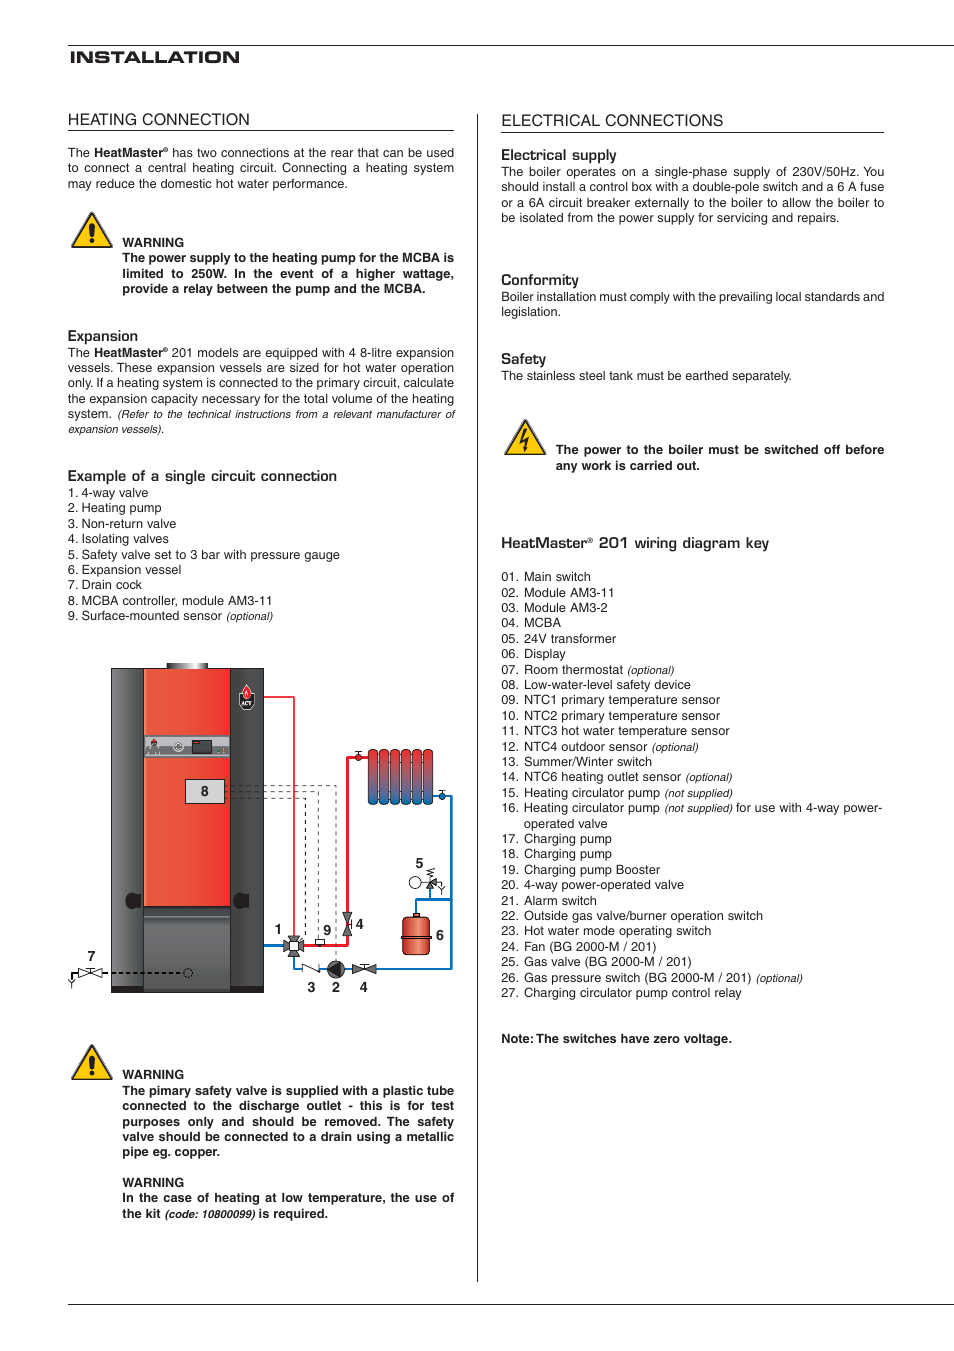 medium resolution of electrical connections installation heating connection heatmaster 201 user manual page 12 28